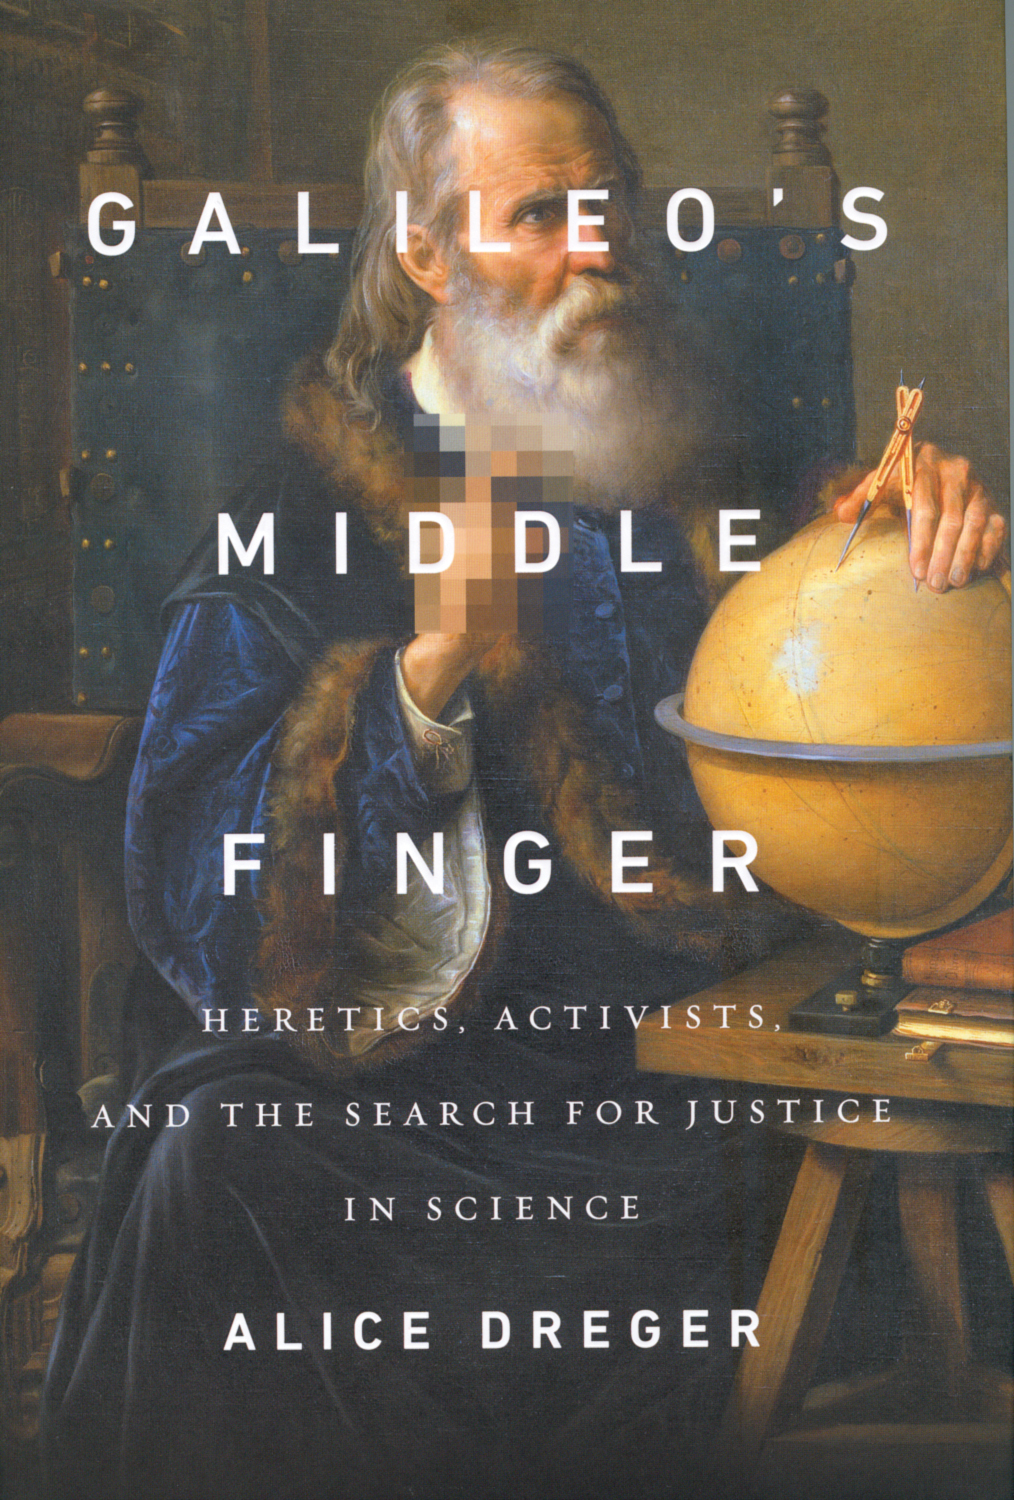 Galileos middle finger.jpg